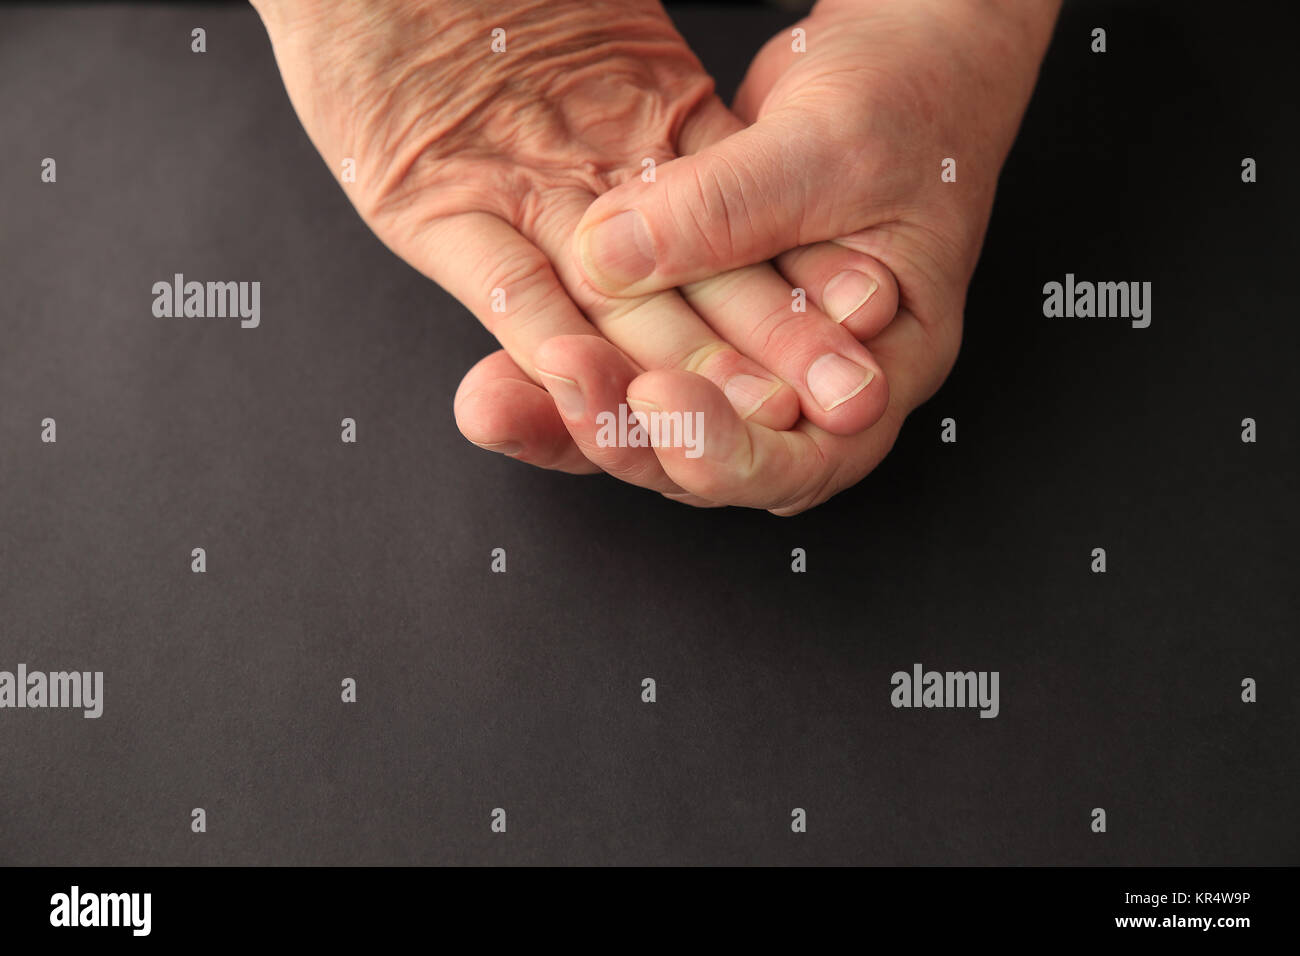 Older man grips his numb fingers - Stock Image